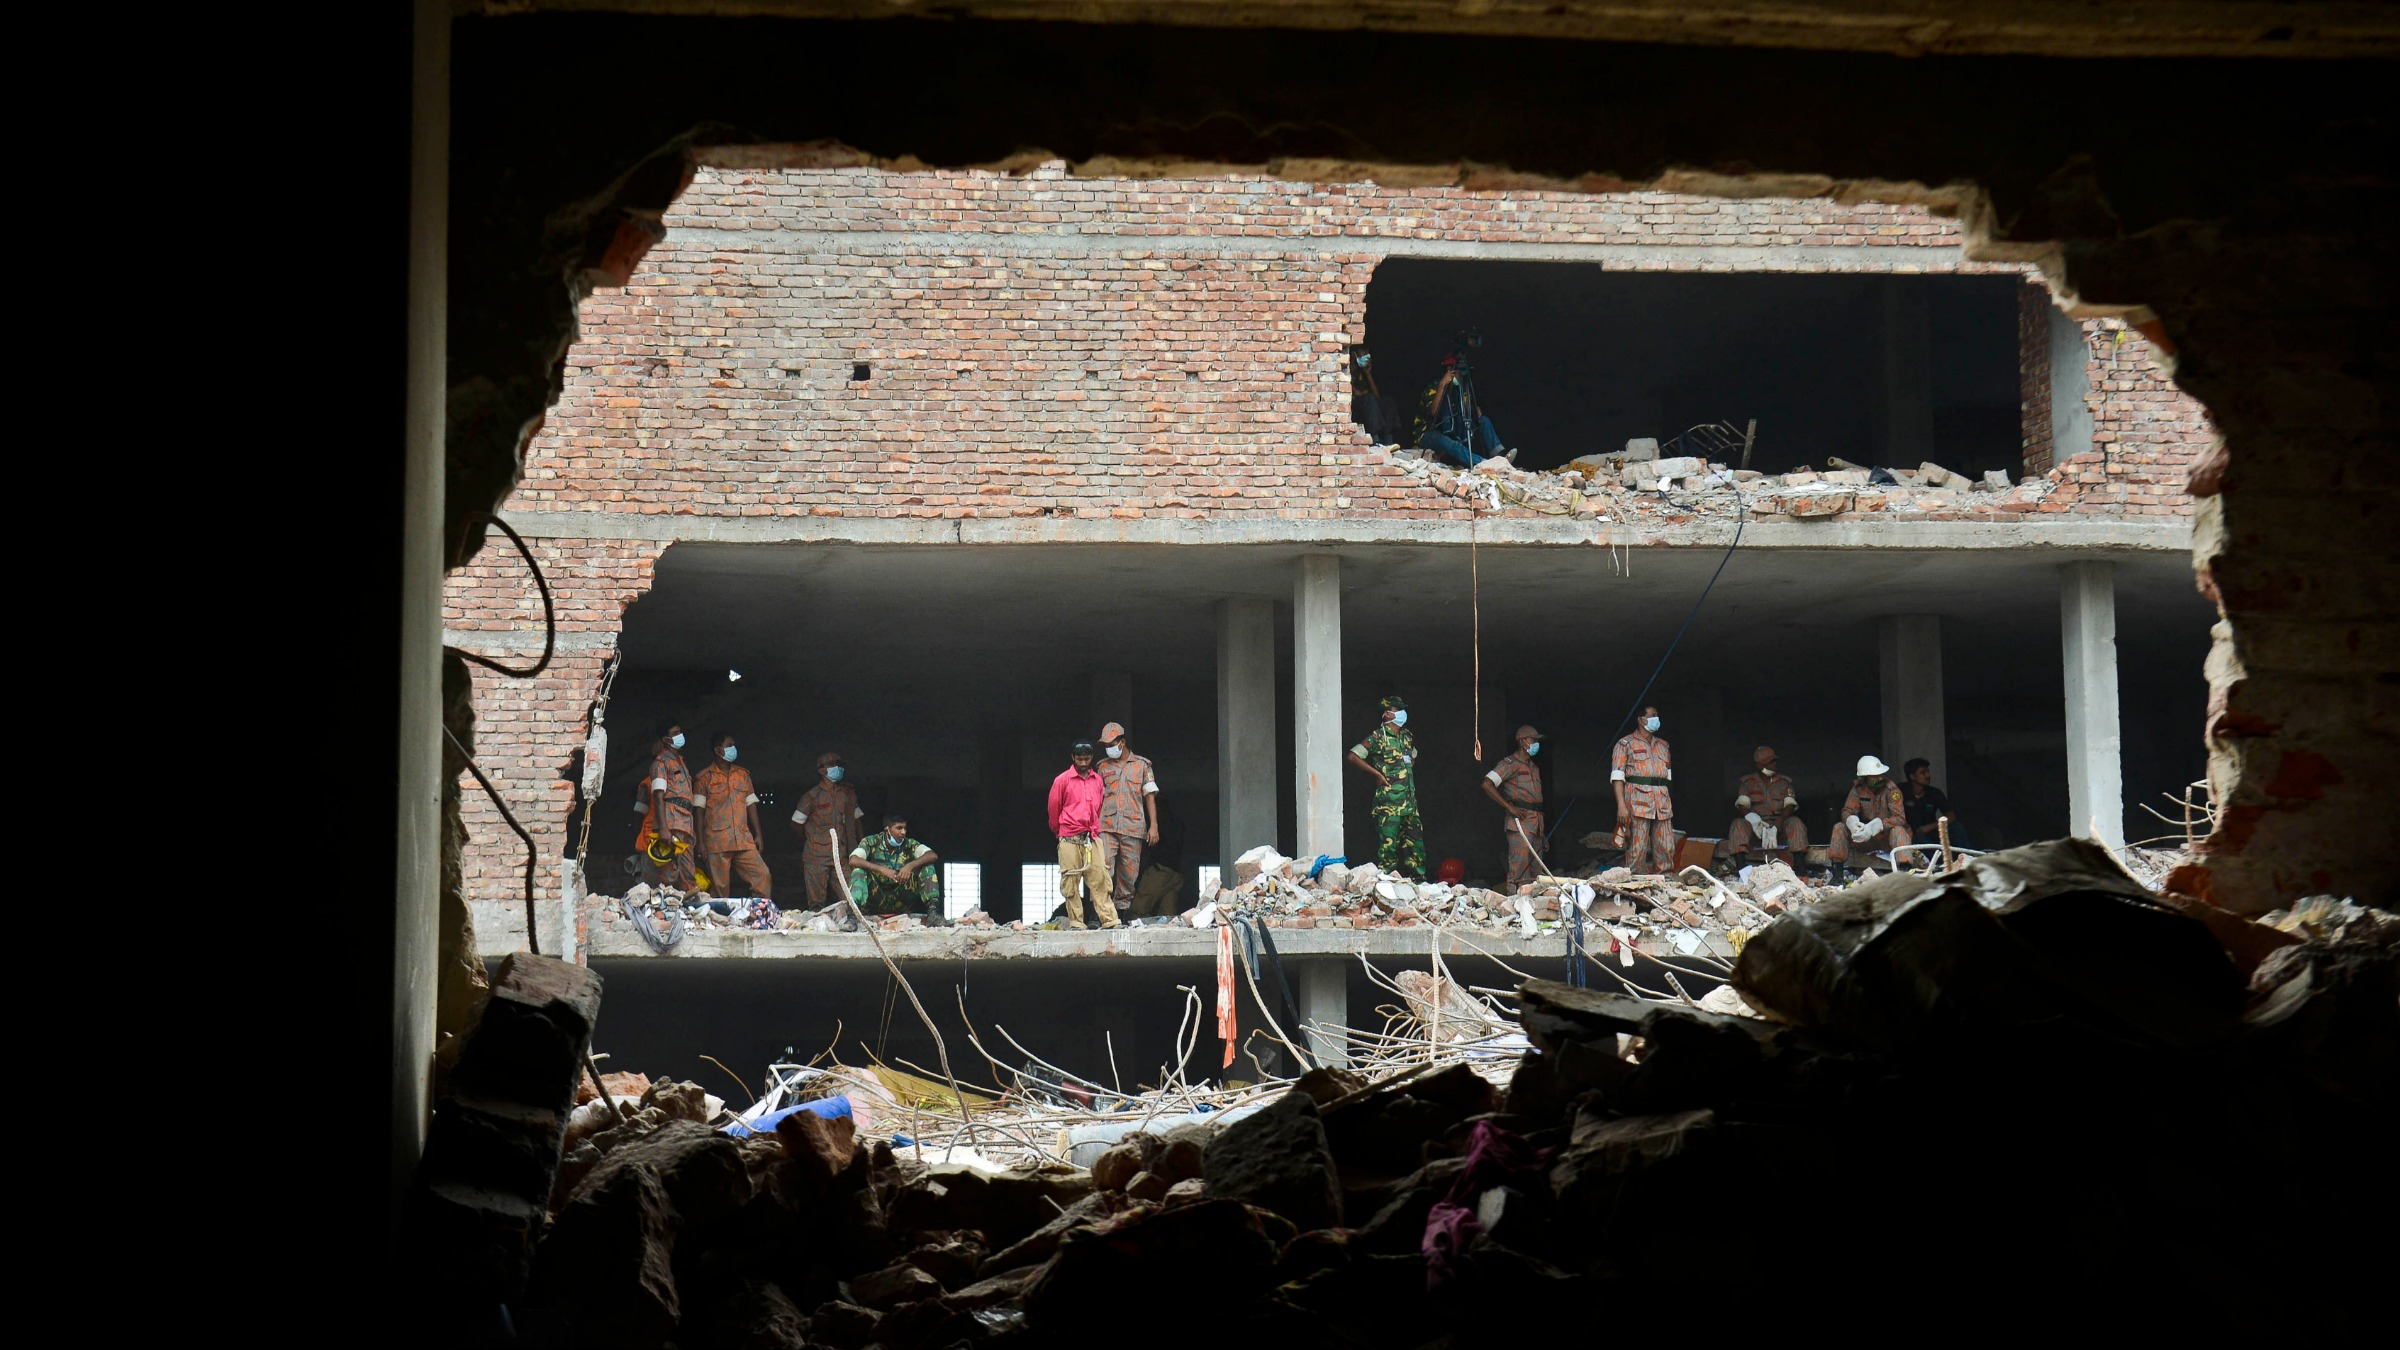 Rubble left over from Bangladesh factory explosions2